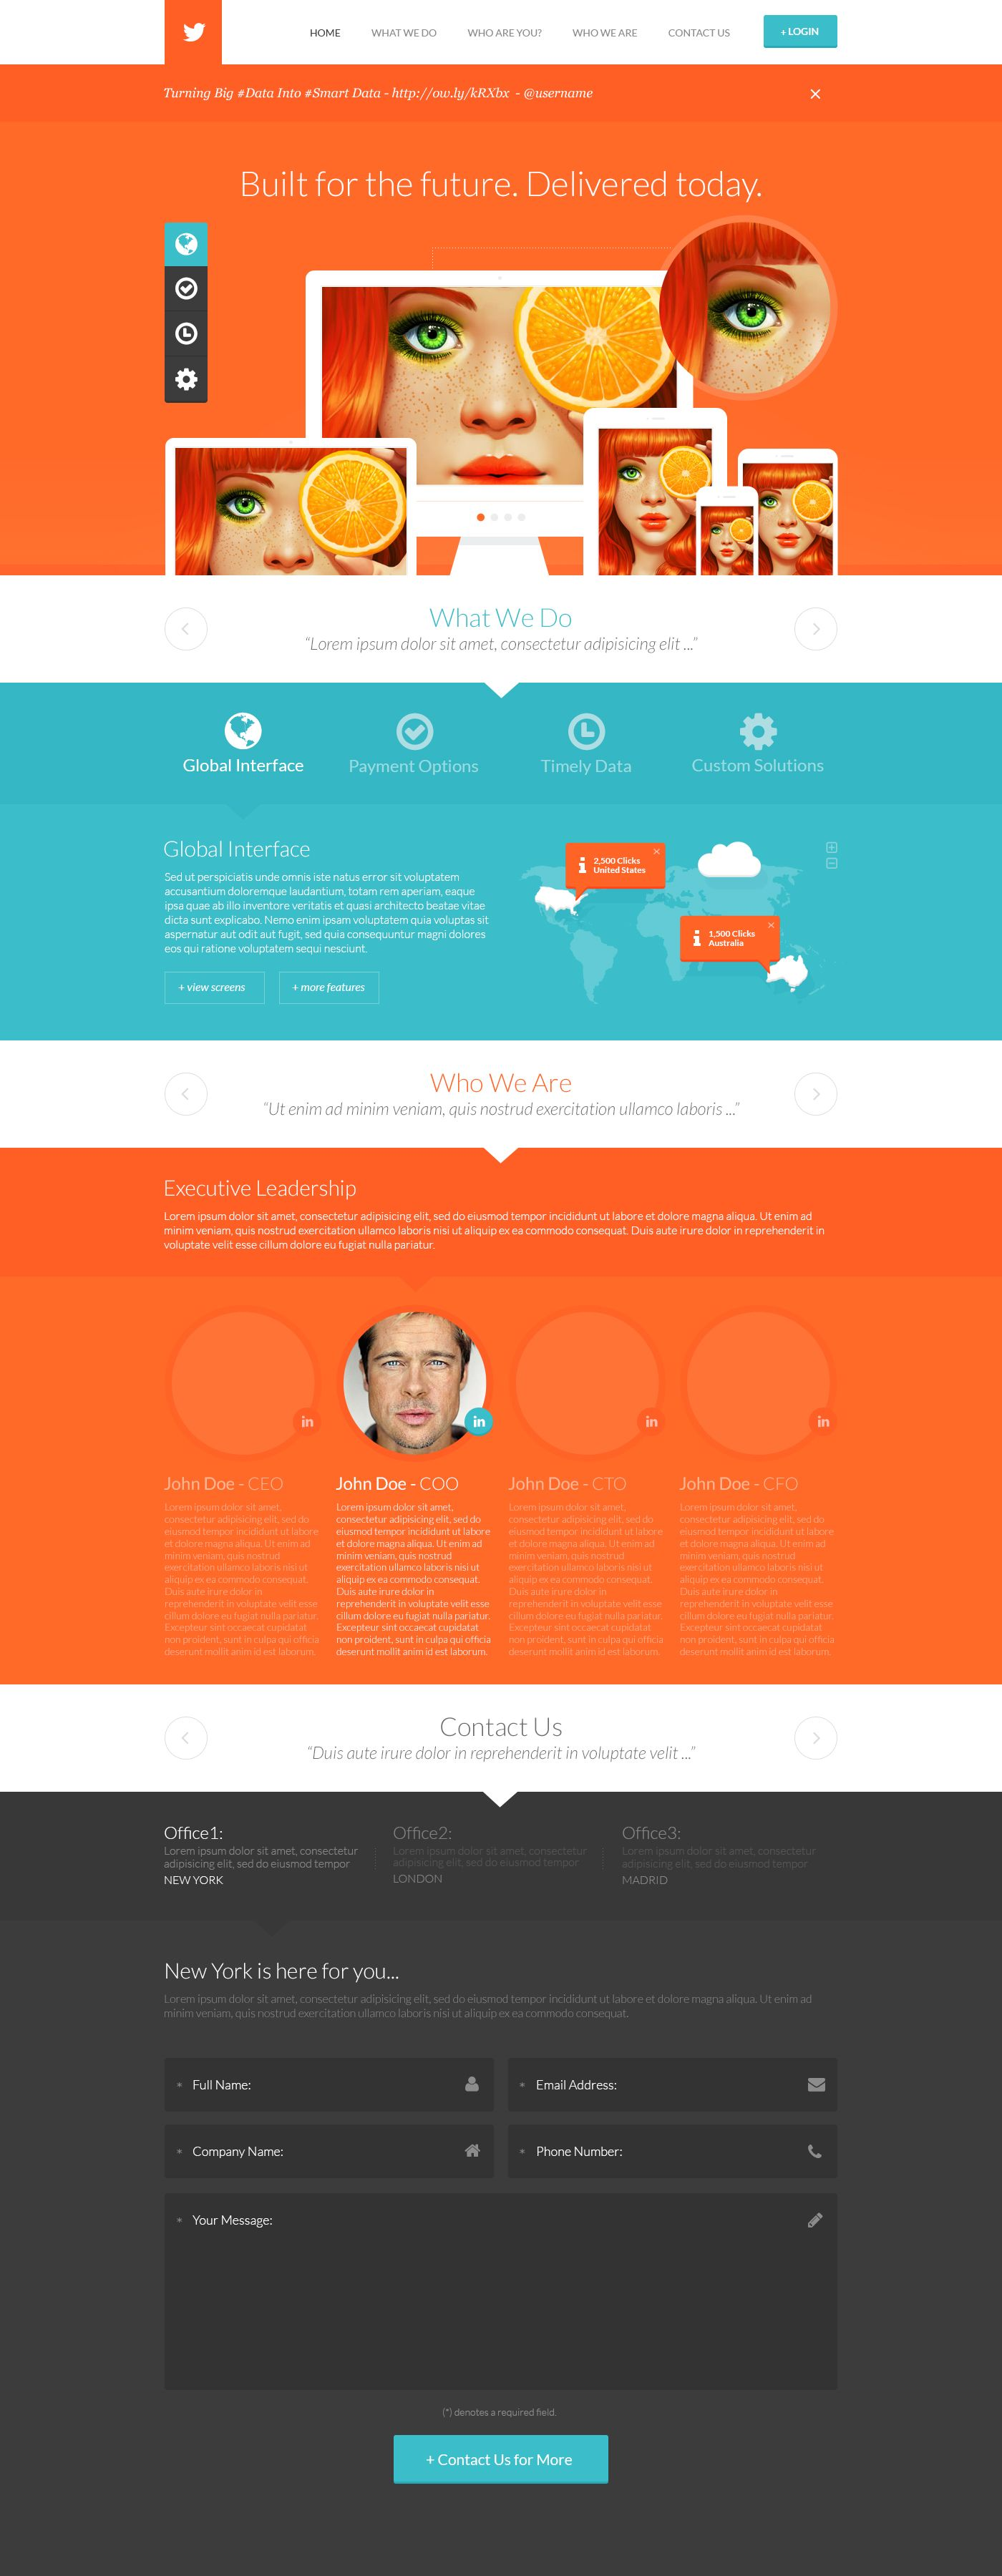 Cmnewmedia Is A Montreal Web Design Company That Offers Affordable Website Design Services Top Quality Fast Deliv Web Layout Web Development Design Orange Web